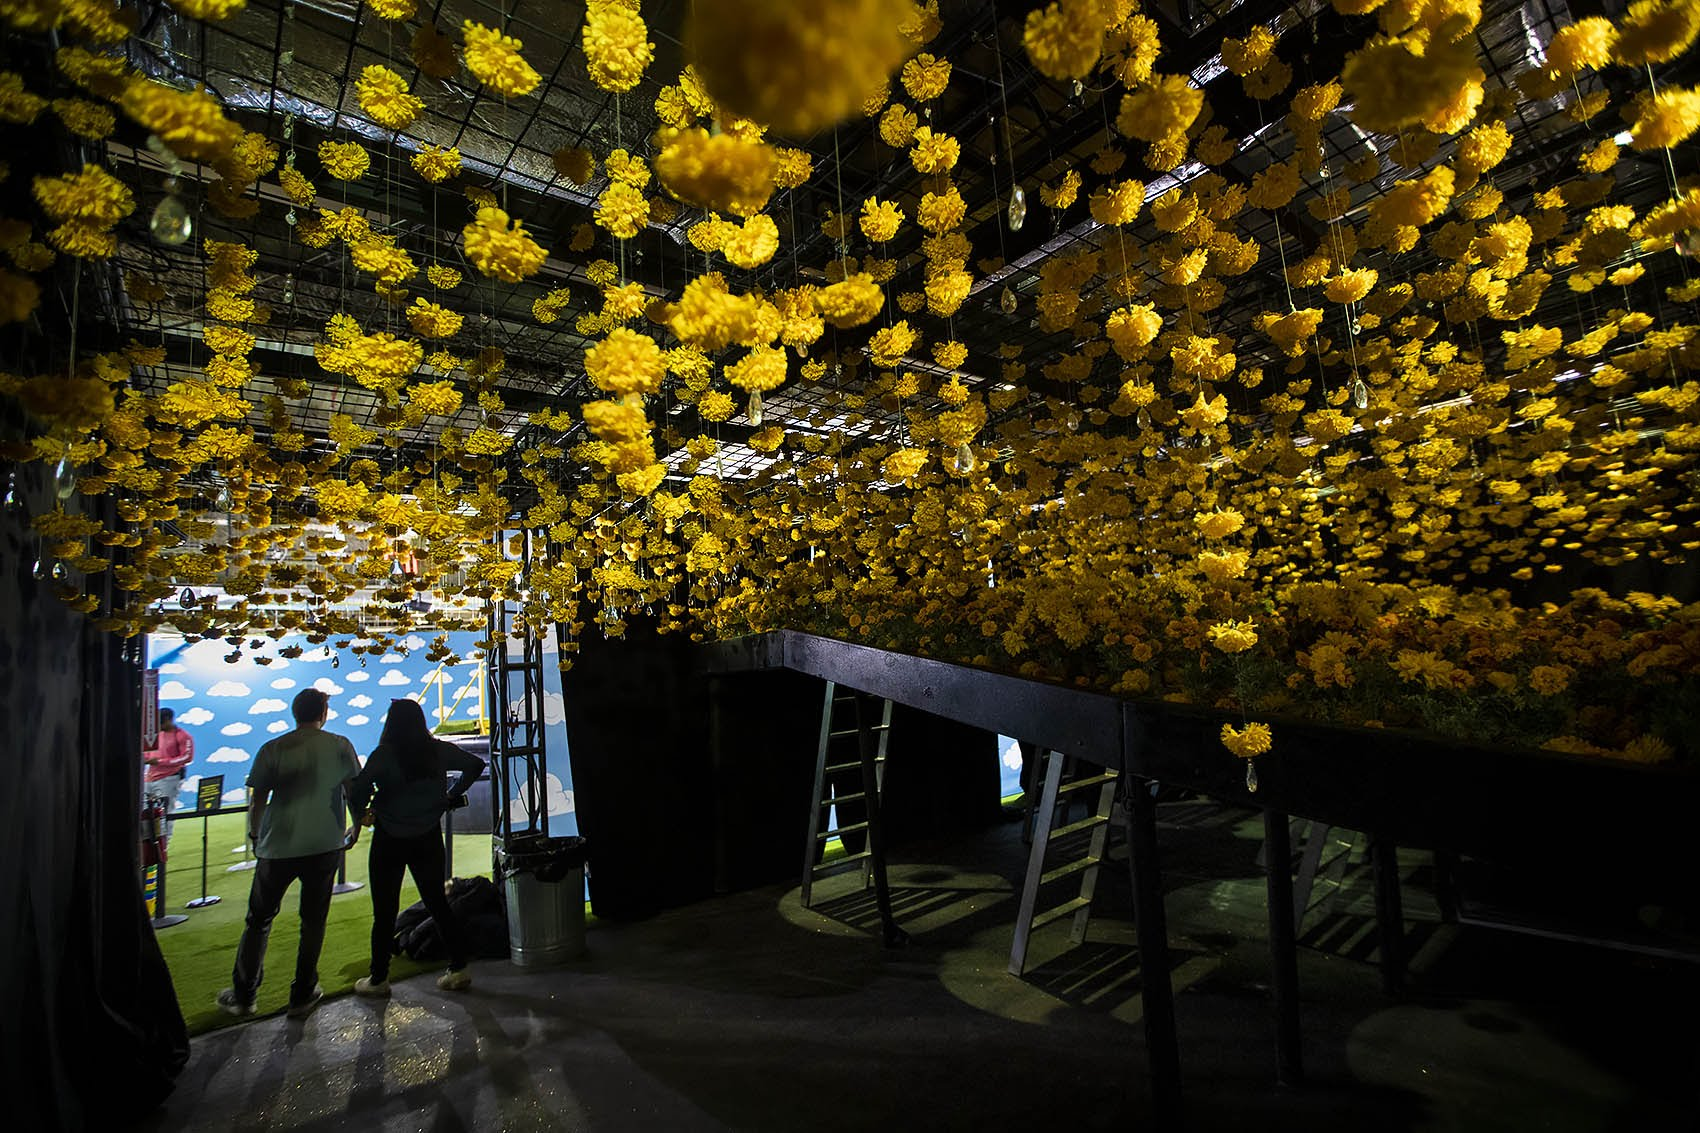 """Riley Bates and Madison Munoz walk out of a room with hundreds yellow carnations hanging from the ceiling at """"Happy Place."""" (Jesse Costa/WBUR)"""